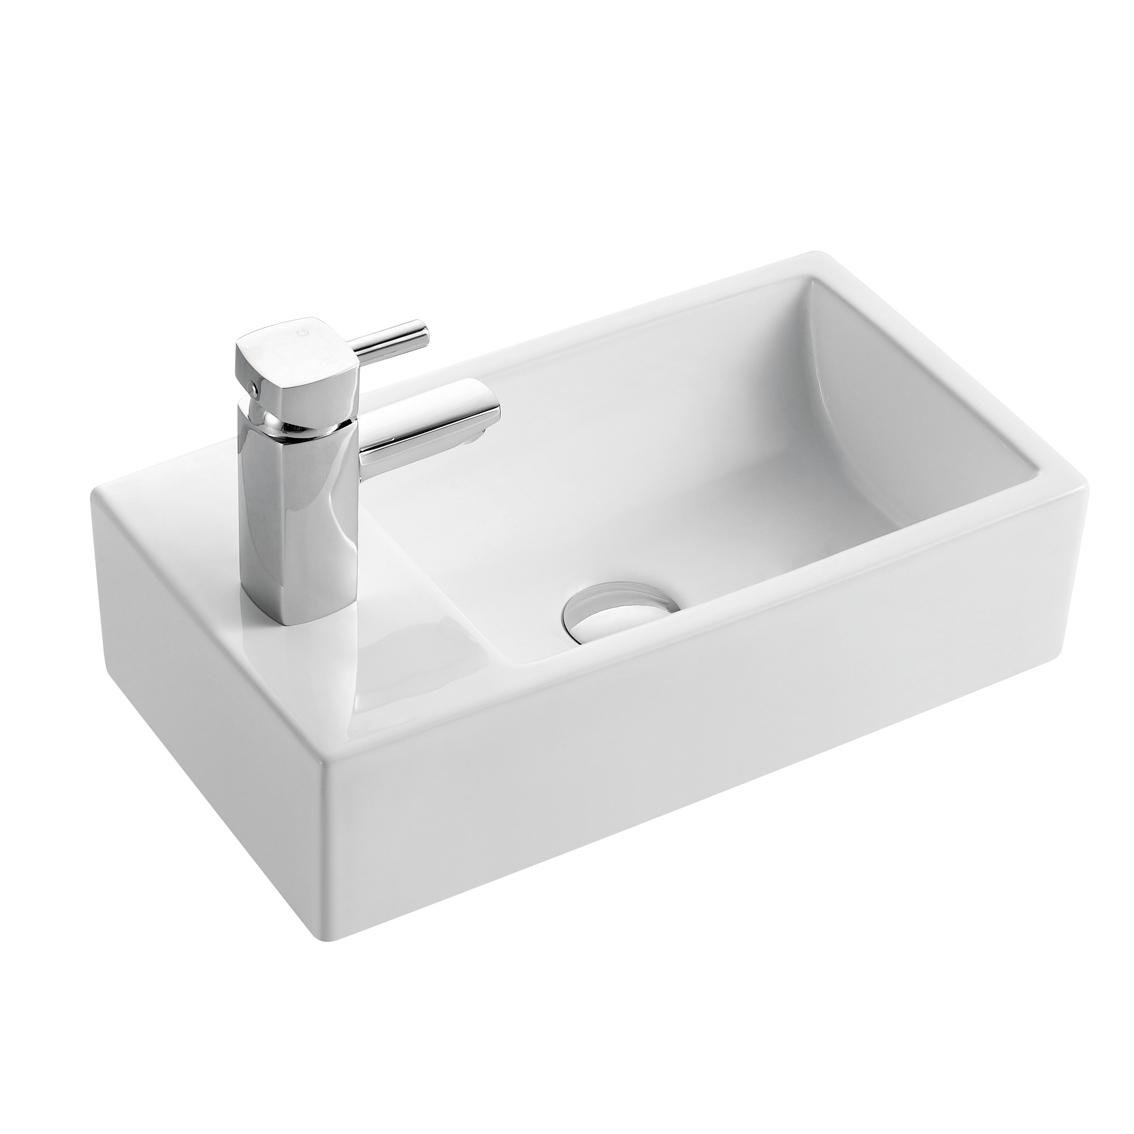 Small Wash Basin Price : Details about Compact Slim Cloakroom Bathroom Wash Basin Sink Ceramic ...